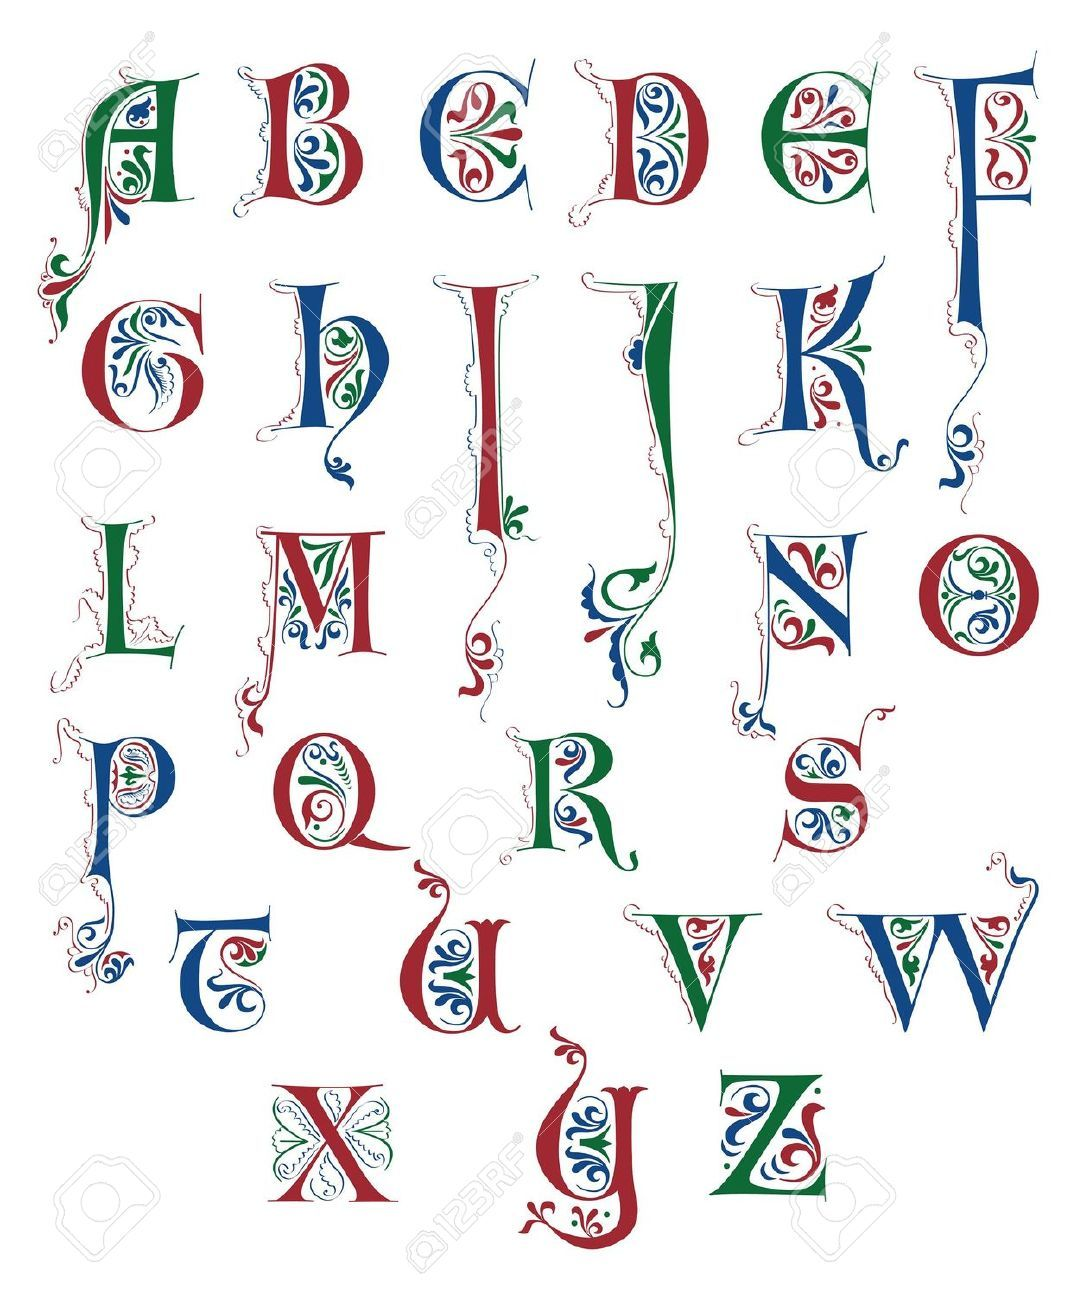 Medieval writing font google search calligraphy